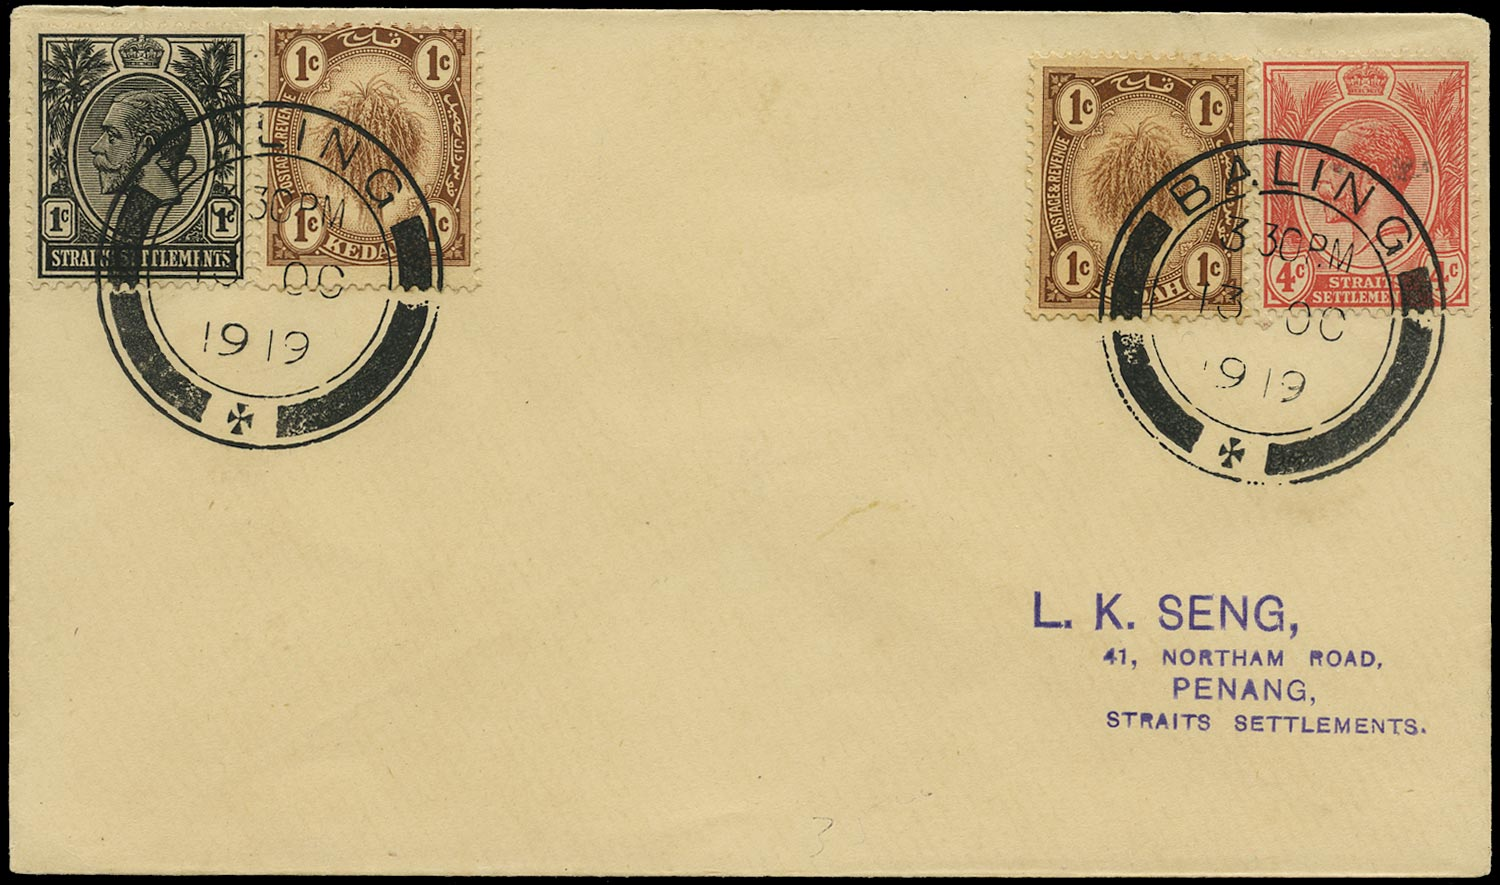 MALAYA - KEDAH 1919  SG15 Cover mixed franking with Straits Settlements 1c and 4c